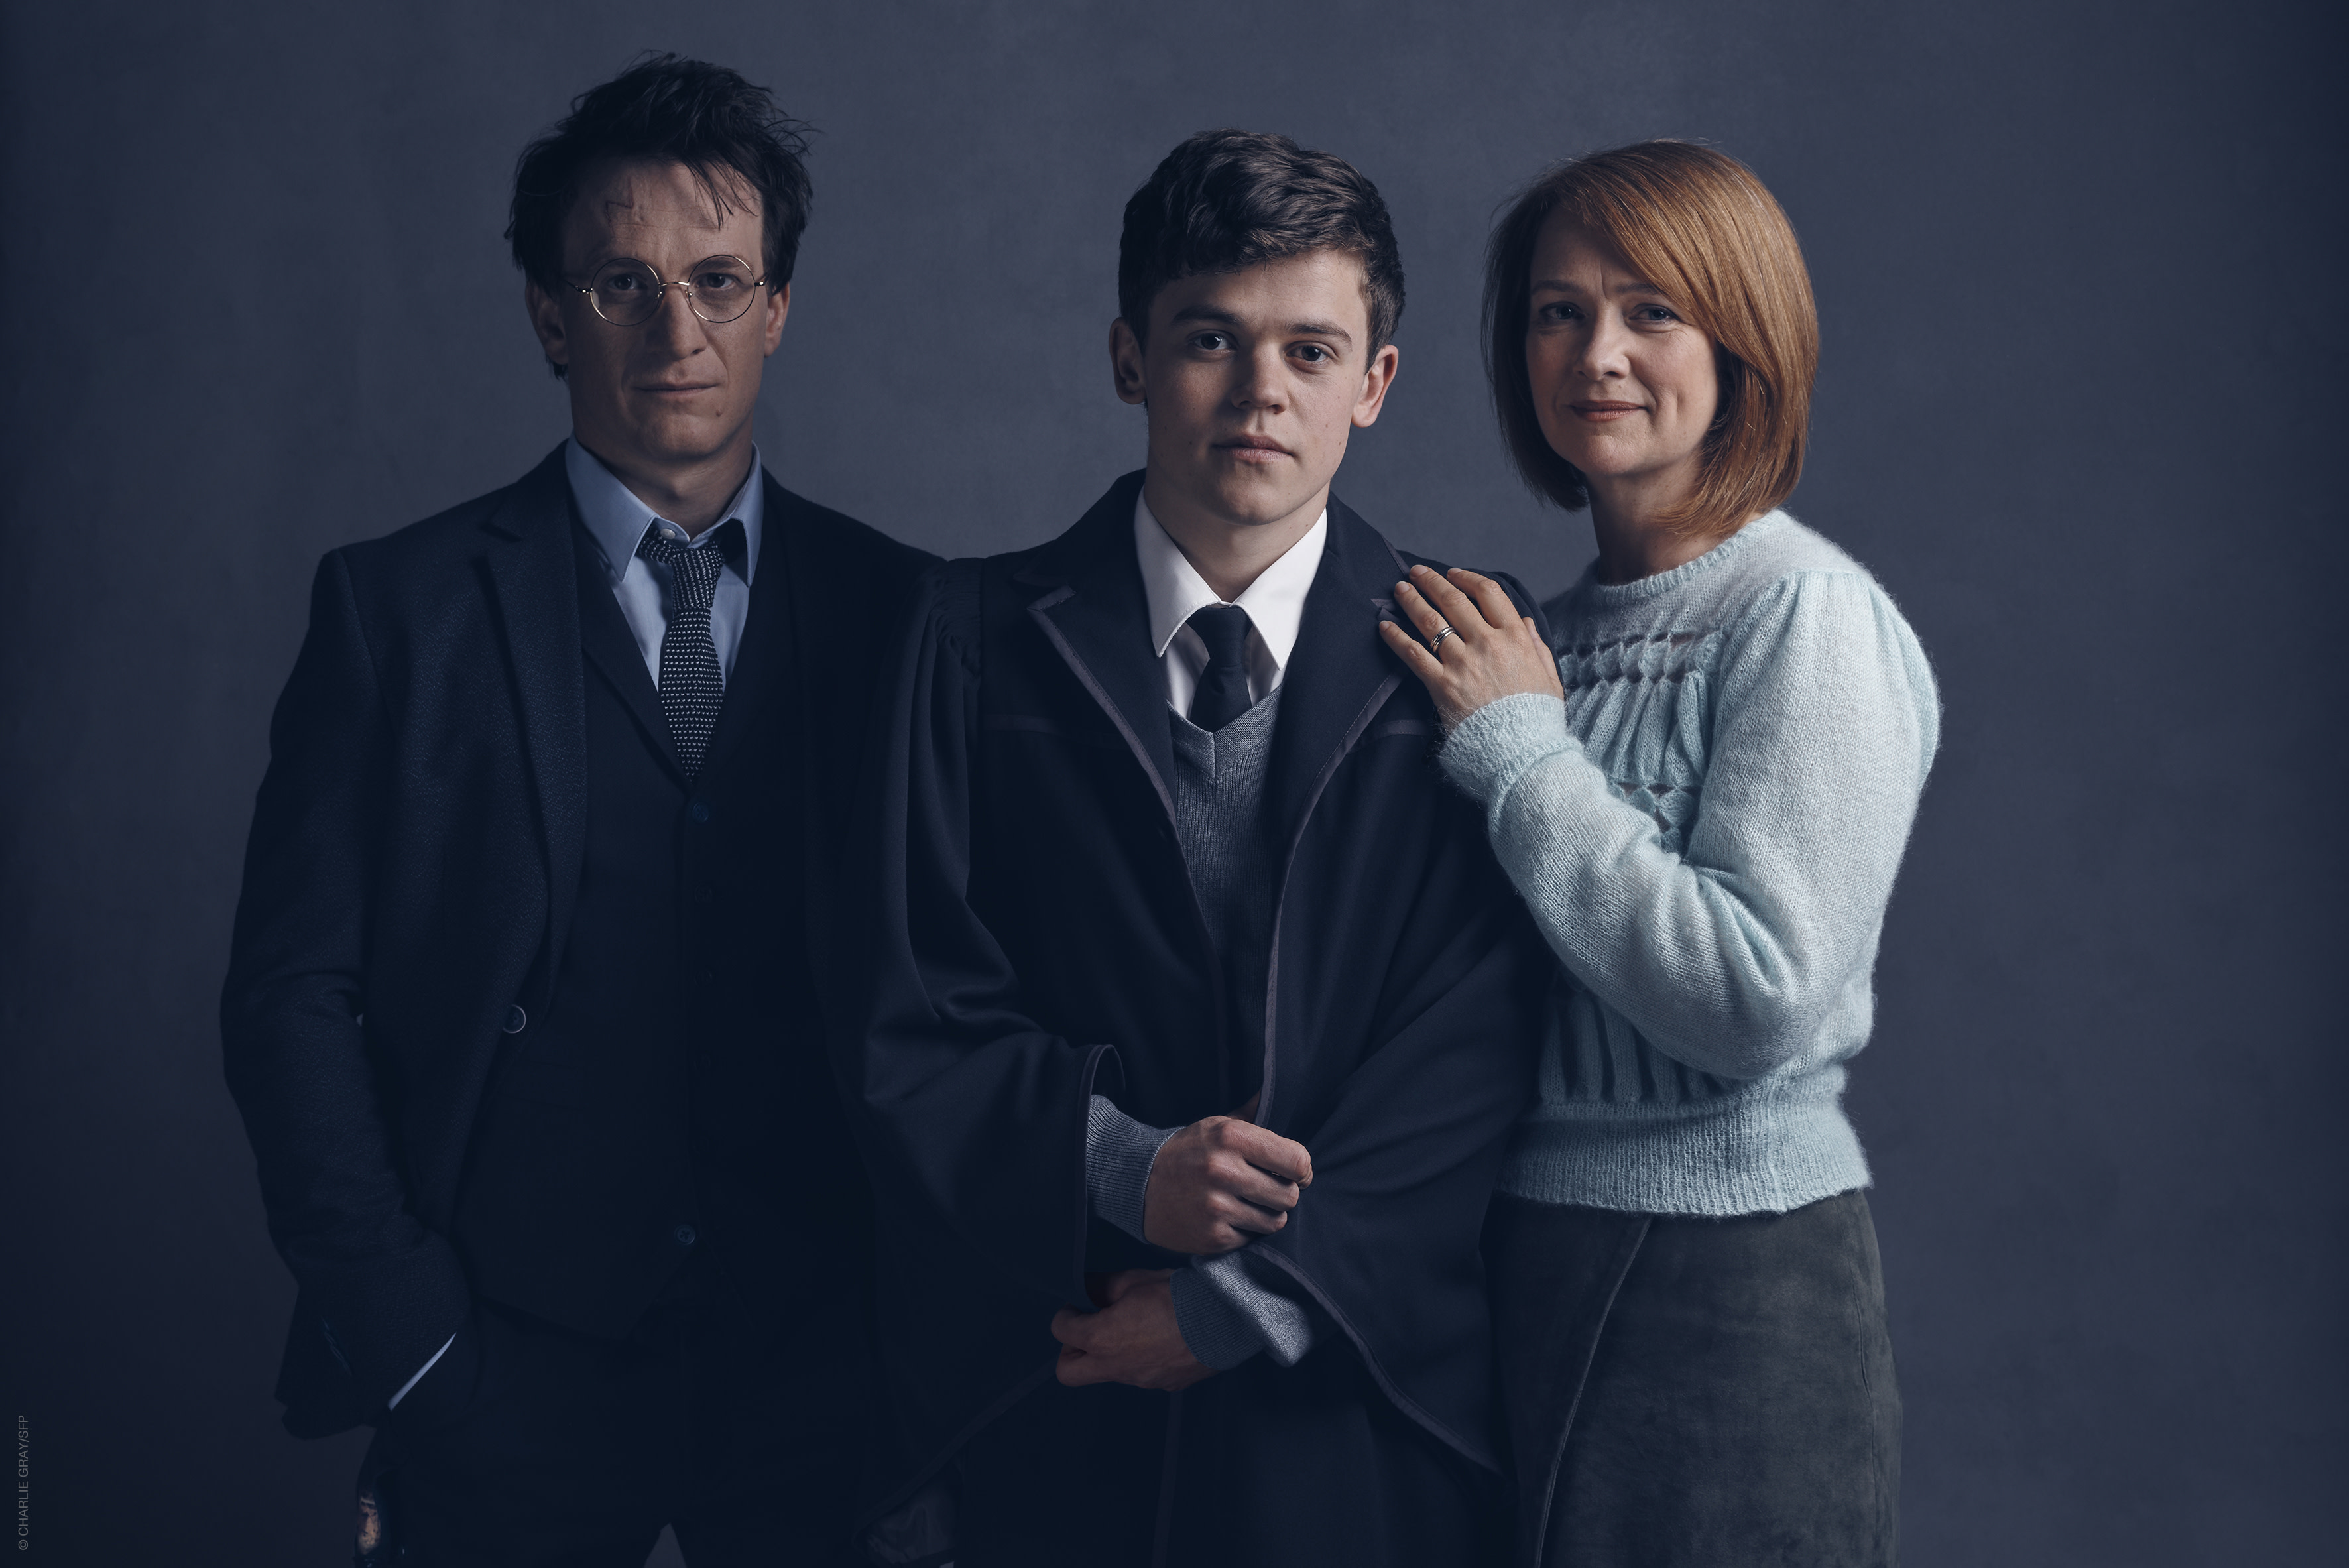 L-R, Jamie Parker as Harry Potter, Sam Clemmett as Albus Potter and Poppy Miller as Ginny Weasley